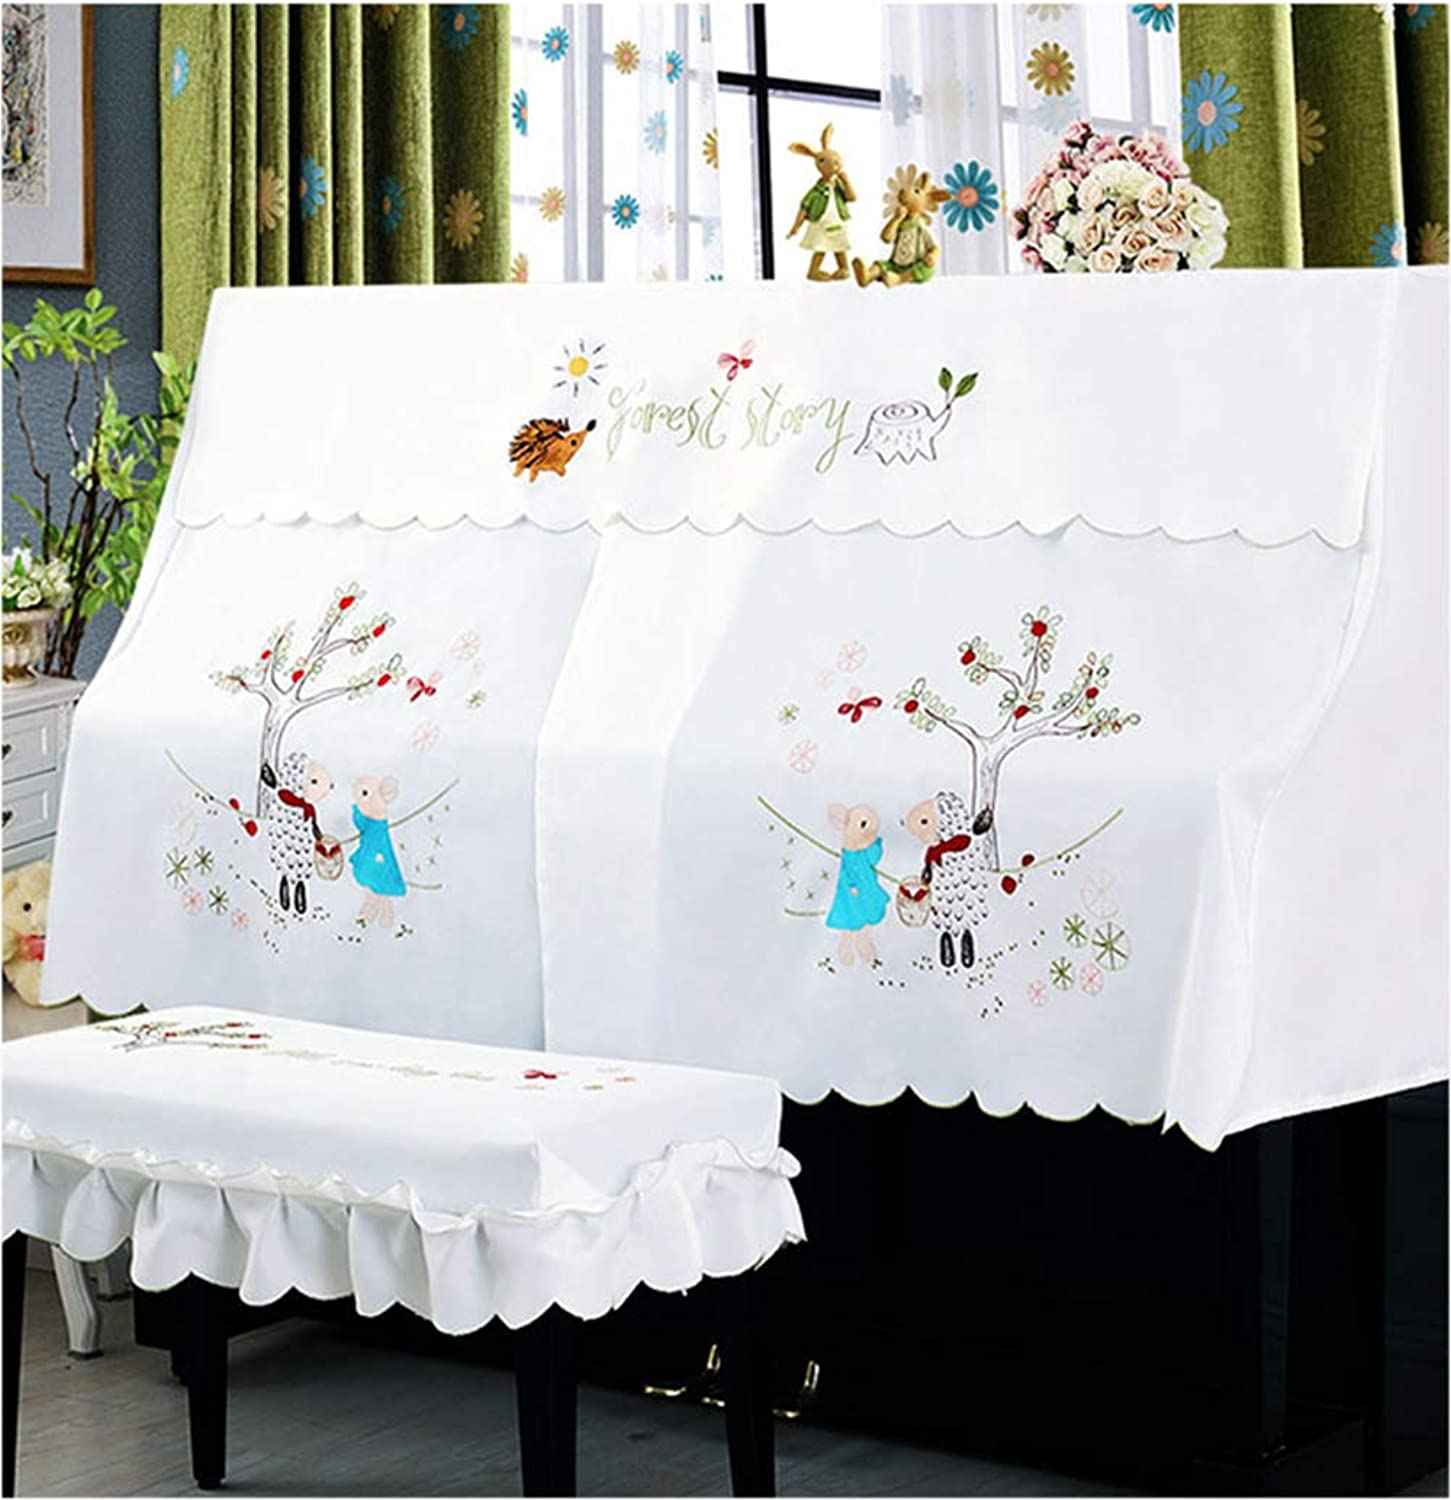 Cartoon Embroidery Piano greenical Single seat Stool dust Cover Desktop Mosquito Cover